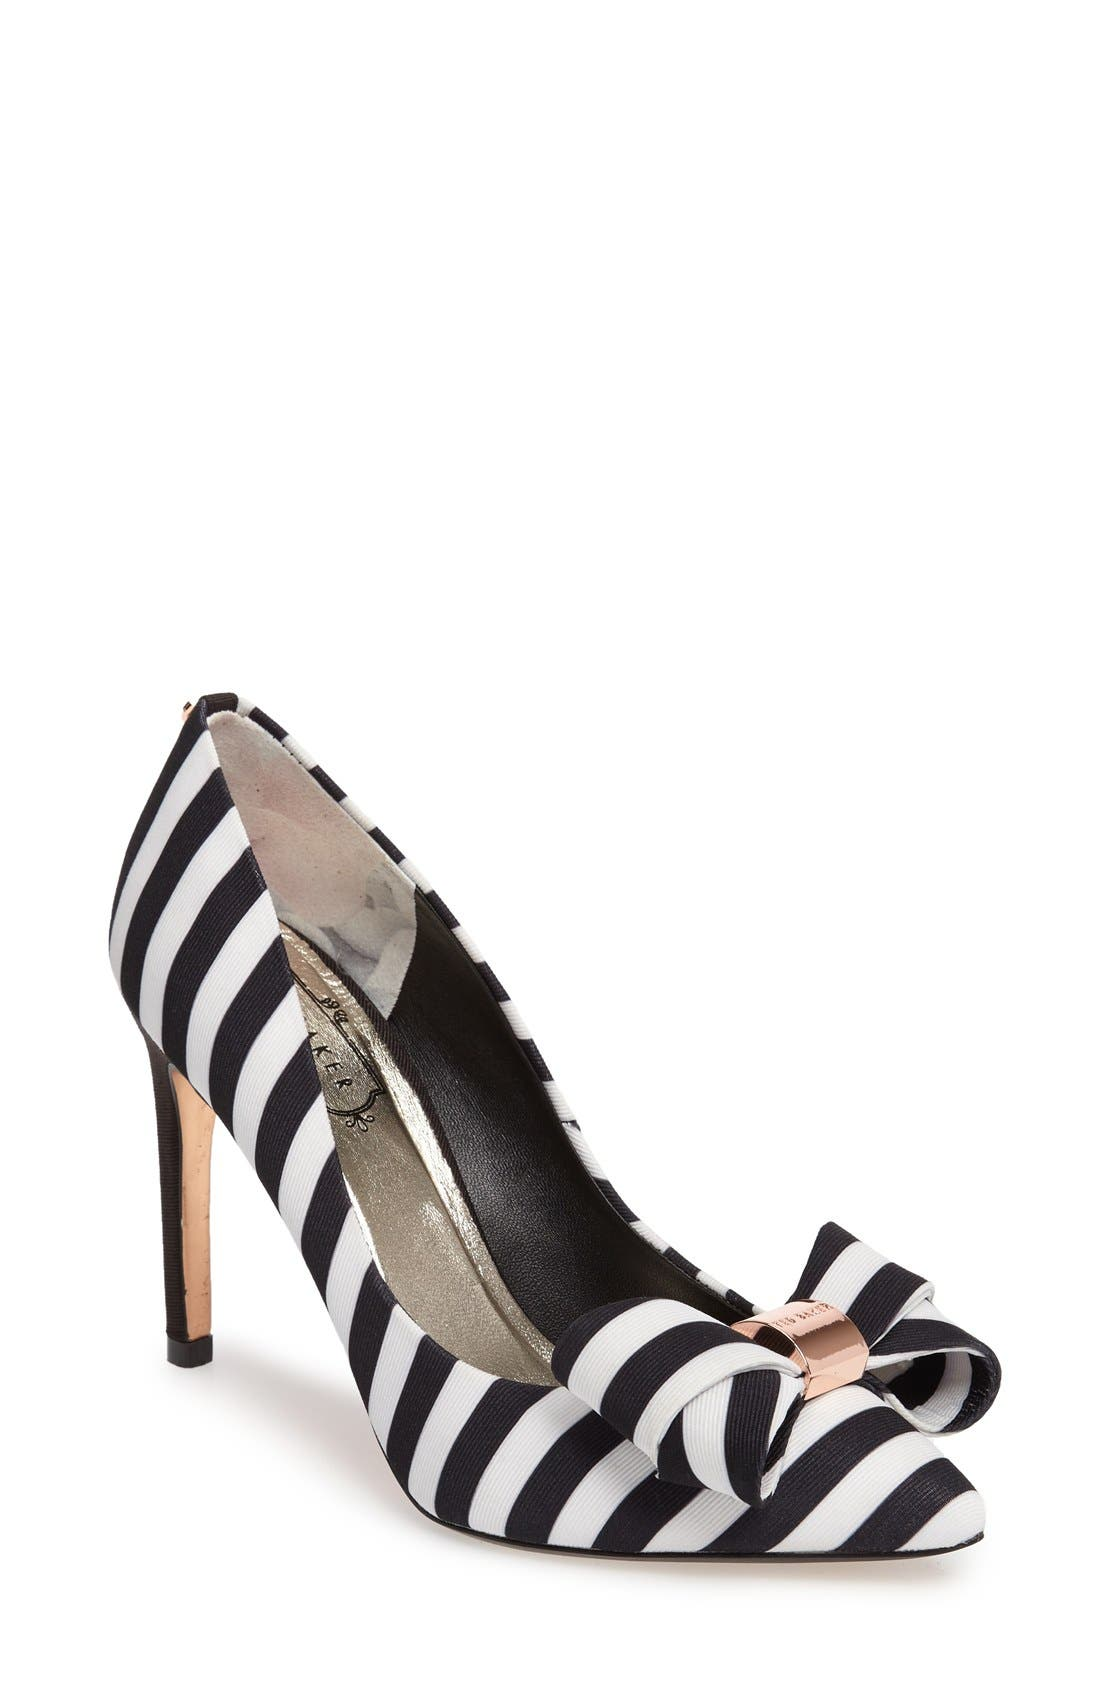 Alternate Image 1 Selected - Ted Baker London 'Ichlibi' Bow Pump (Women)